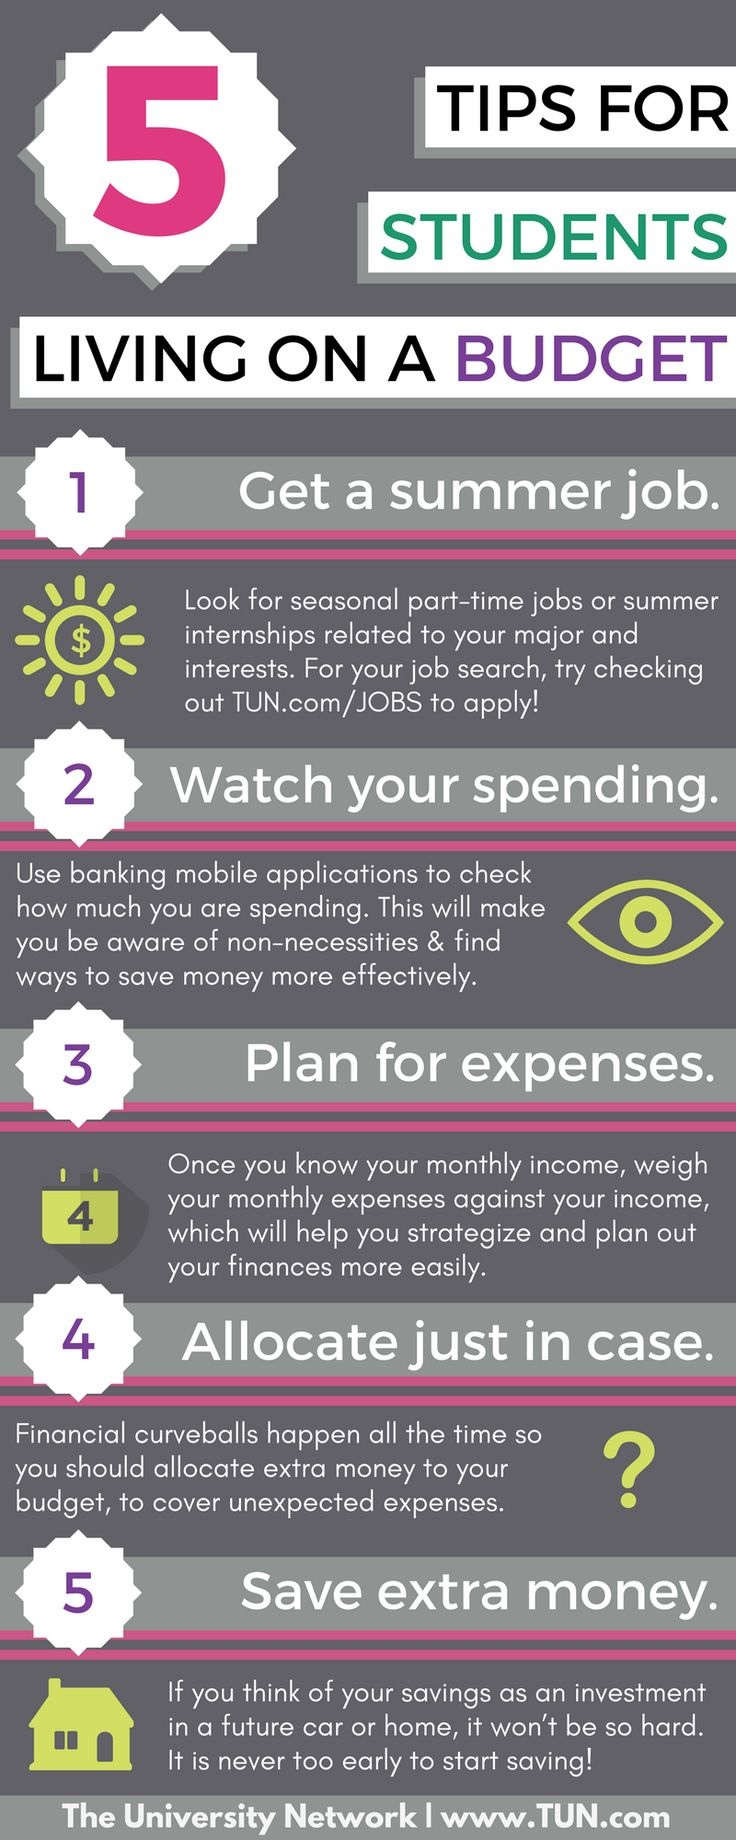 These tips will help you save money!